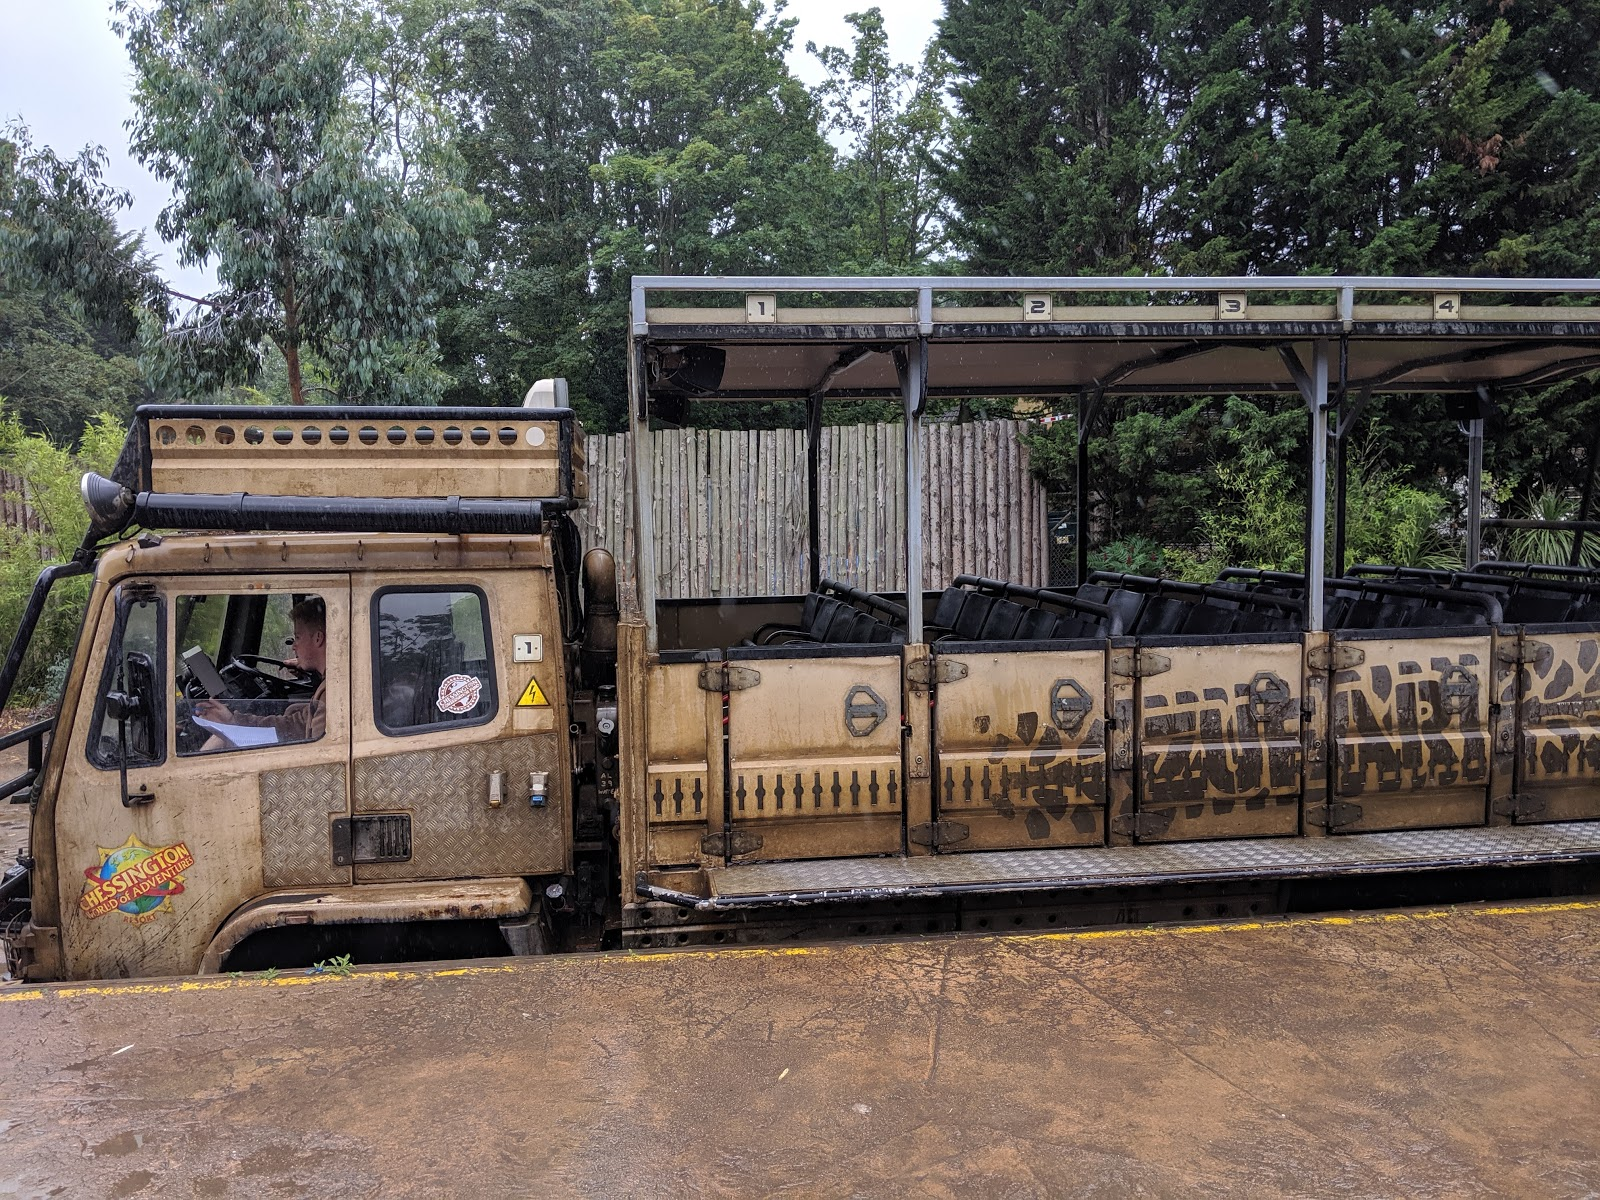 Exploring the Southern Merlin Theme Parks with Tweens  - zufari truck at Chessington